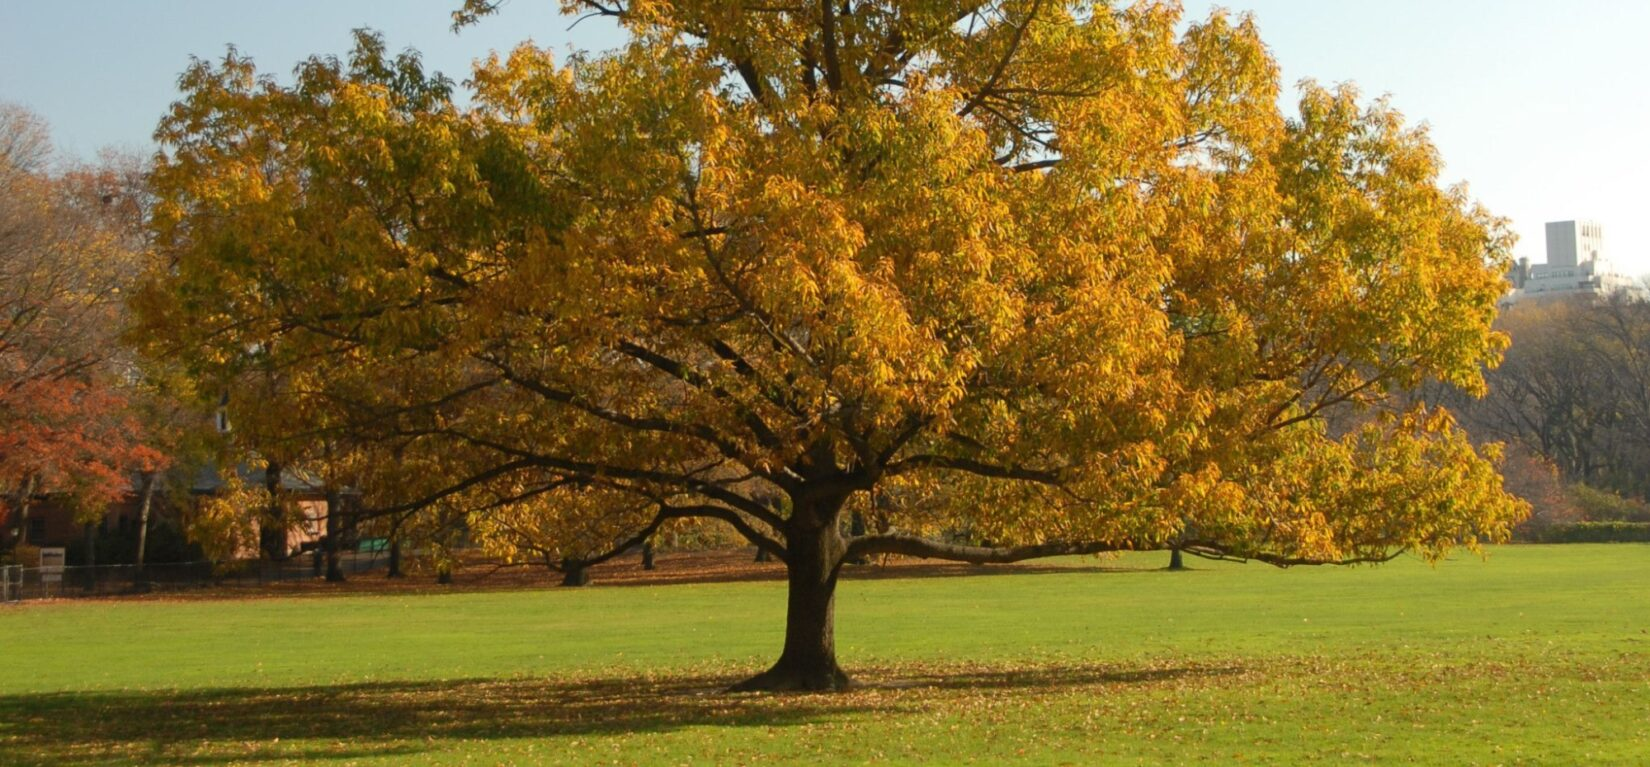 A majestic oak stands alone in all its autumnal beauty